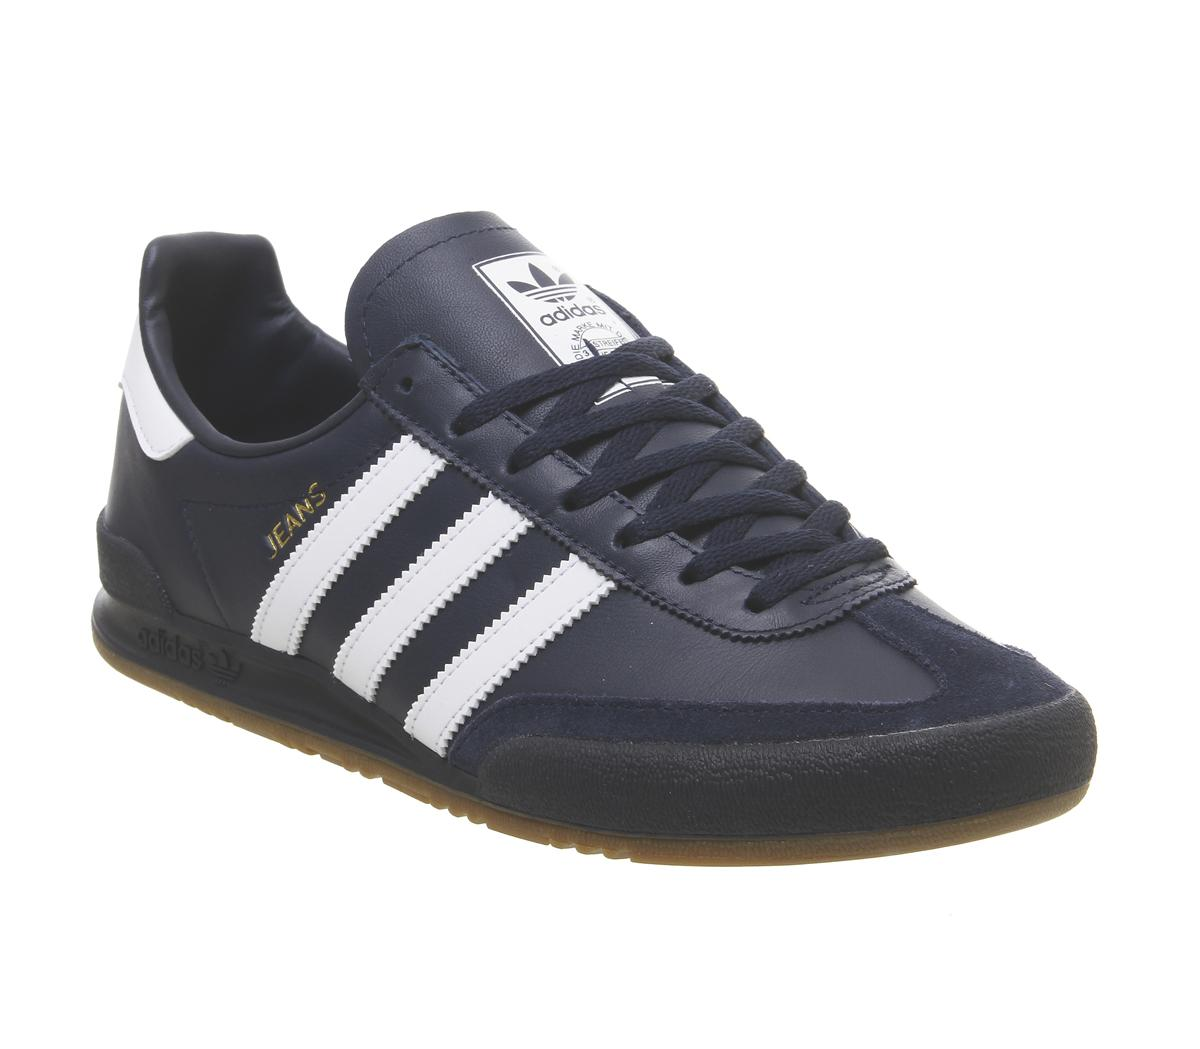 mens adidas jeans trainers size 11